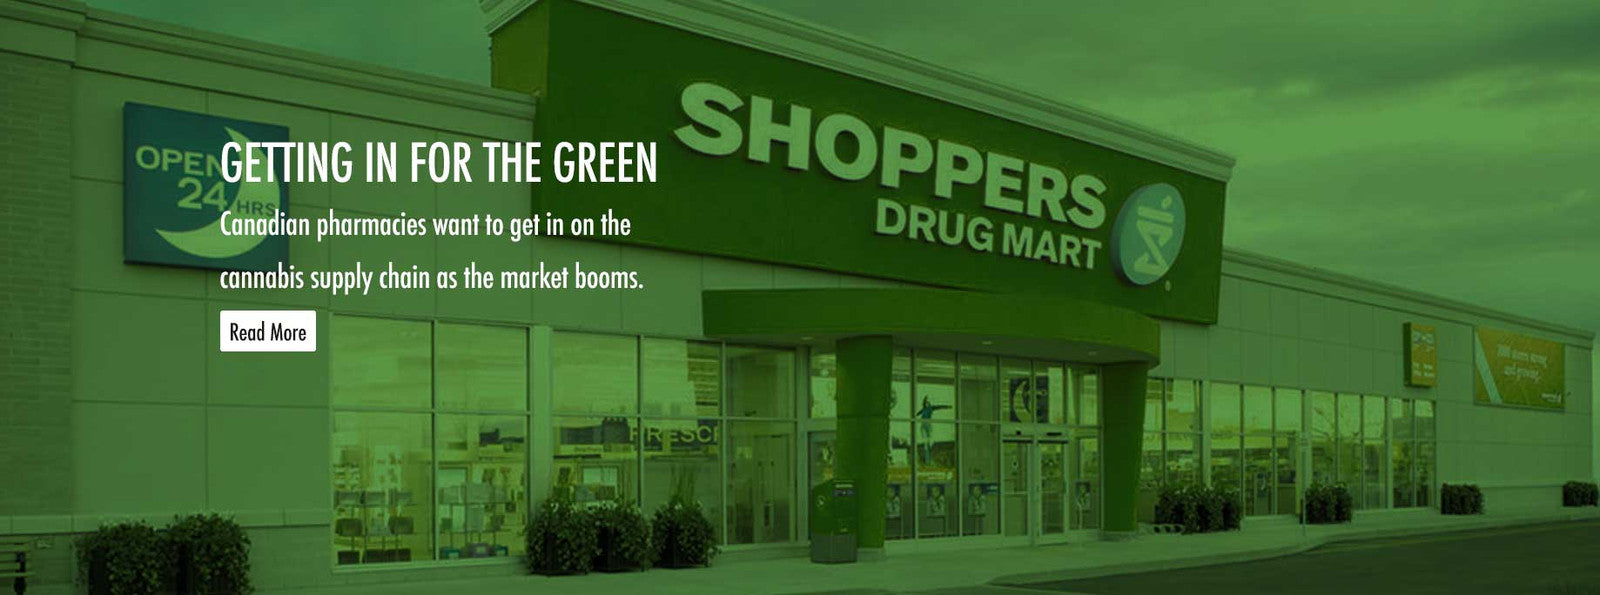 Shoppers Drug Mart Selling Medical Marijuana